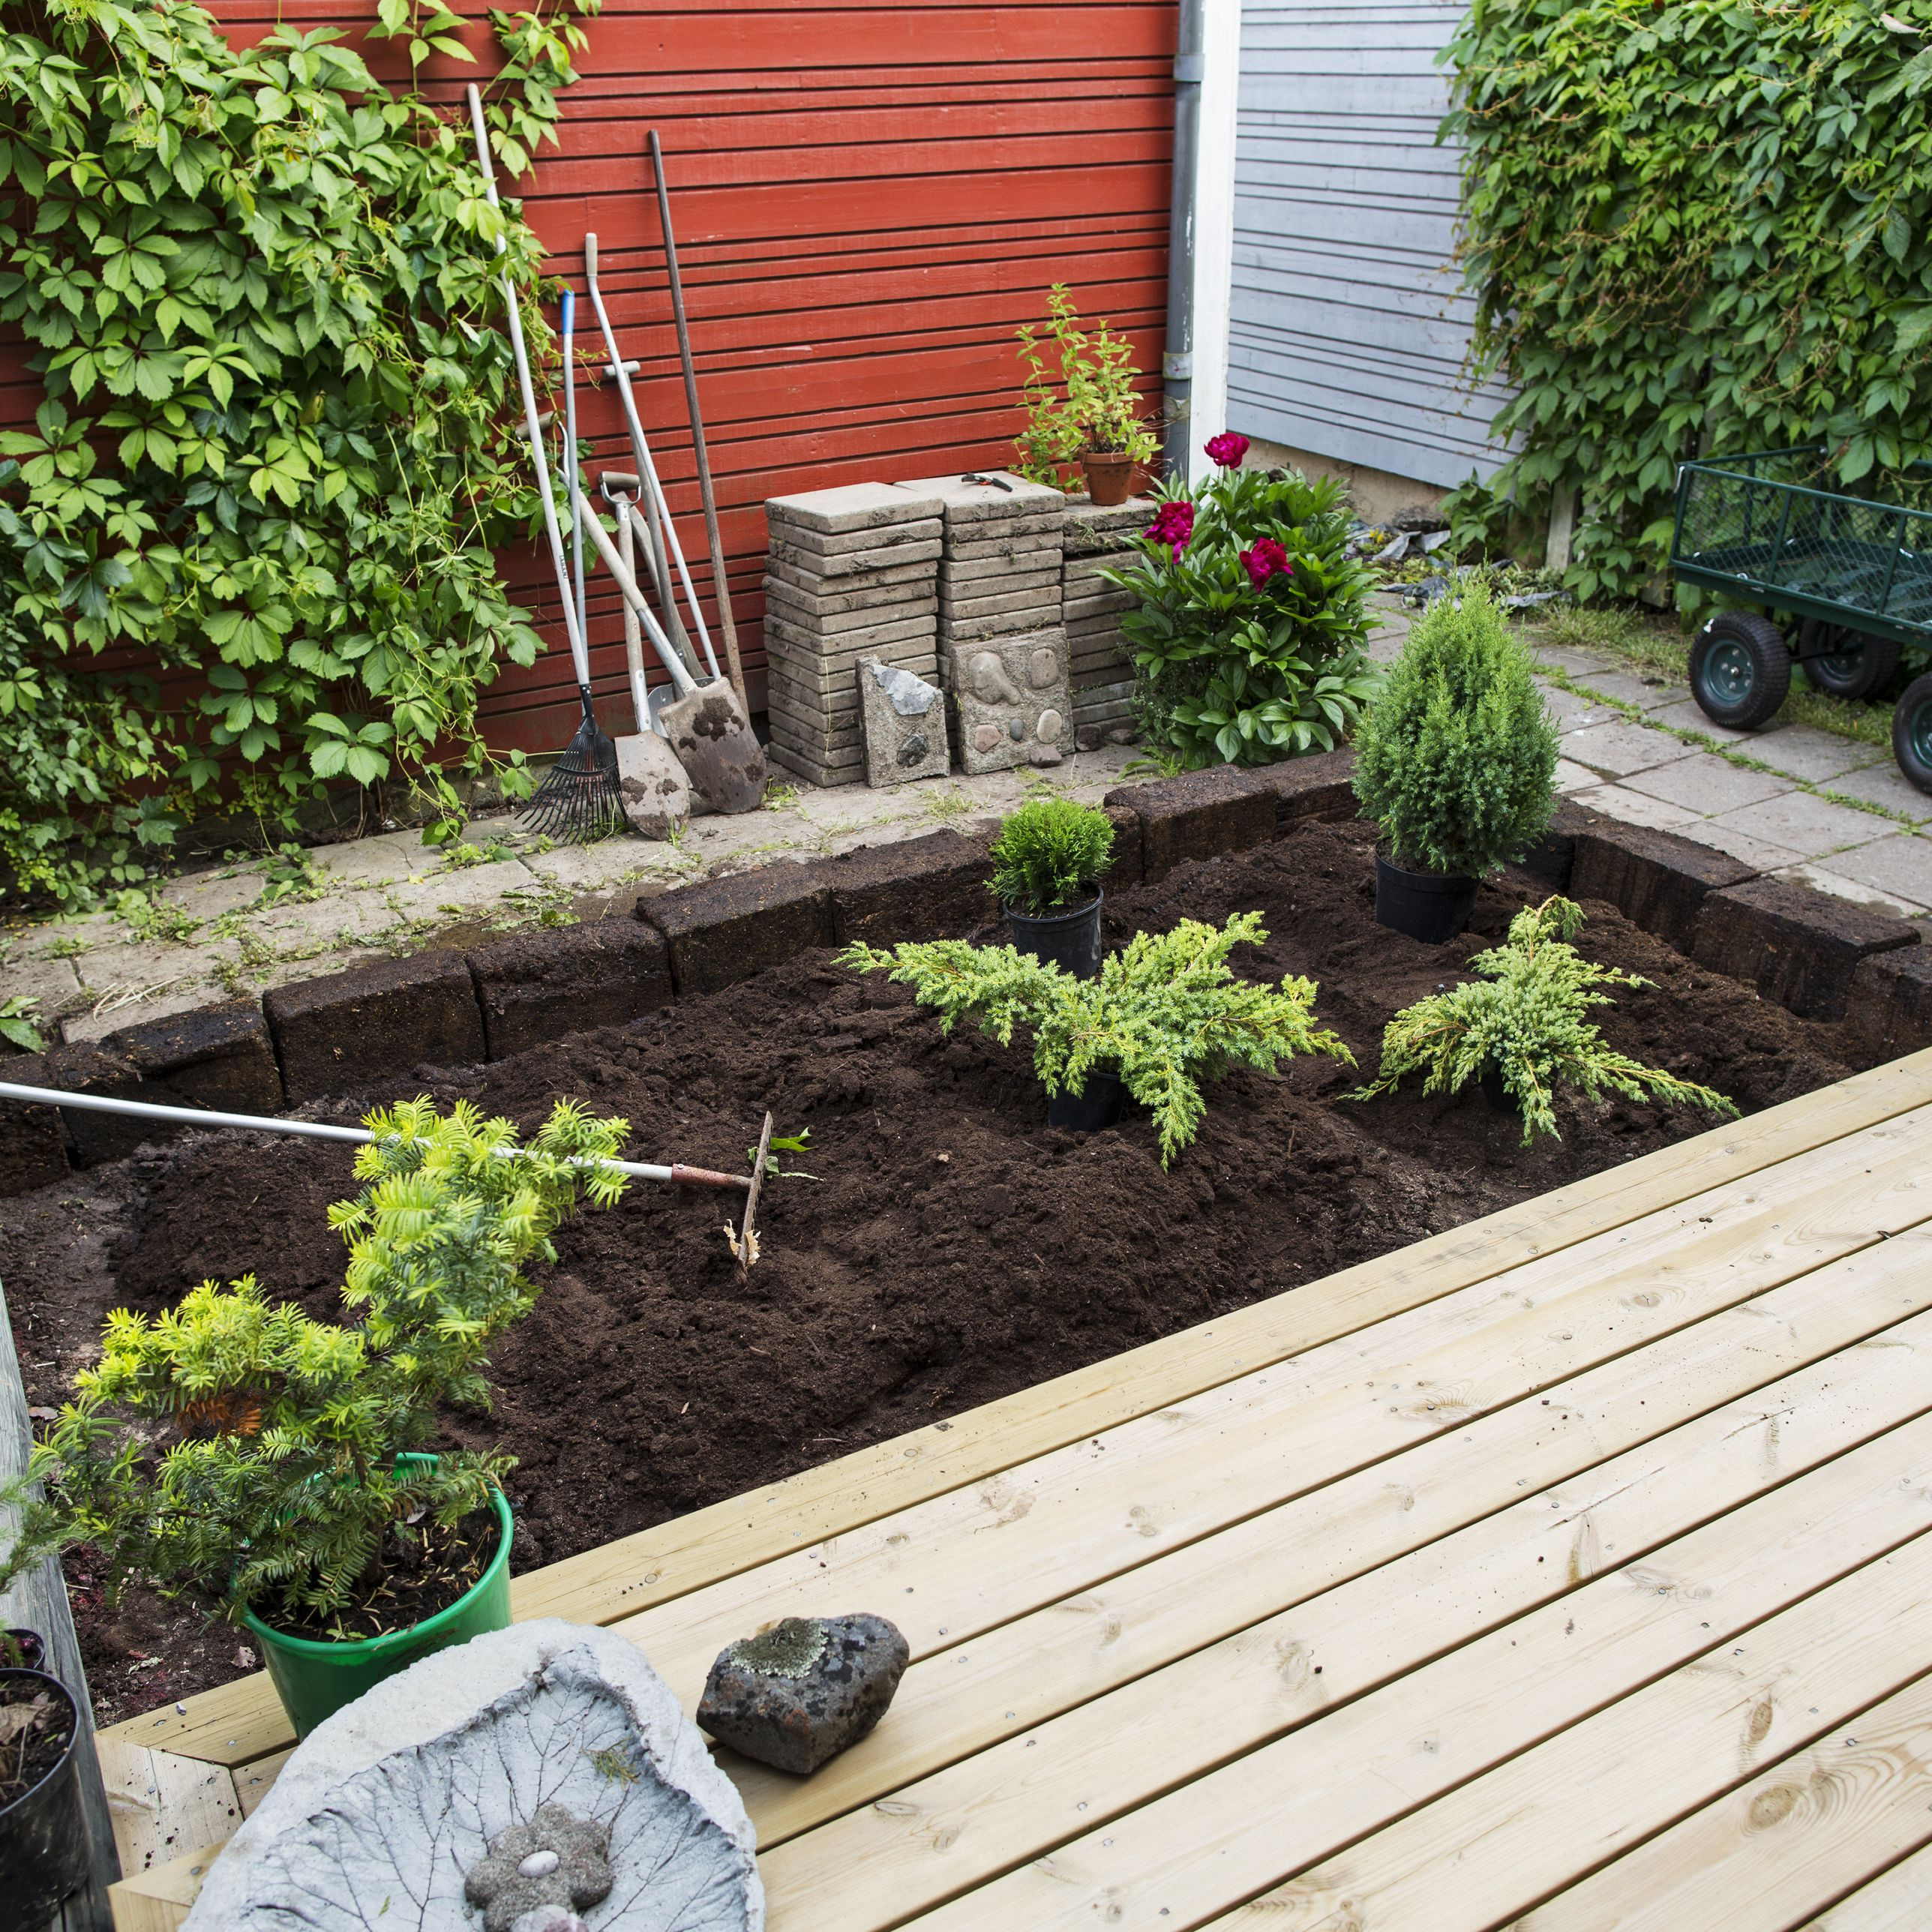 Small Gardens Without Grass - No Grass Back Yard Home ...